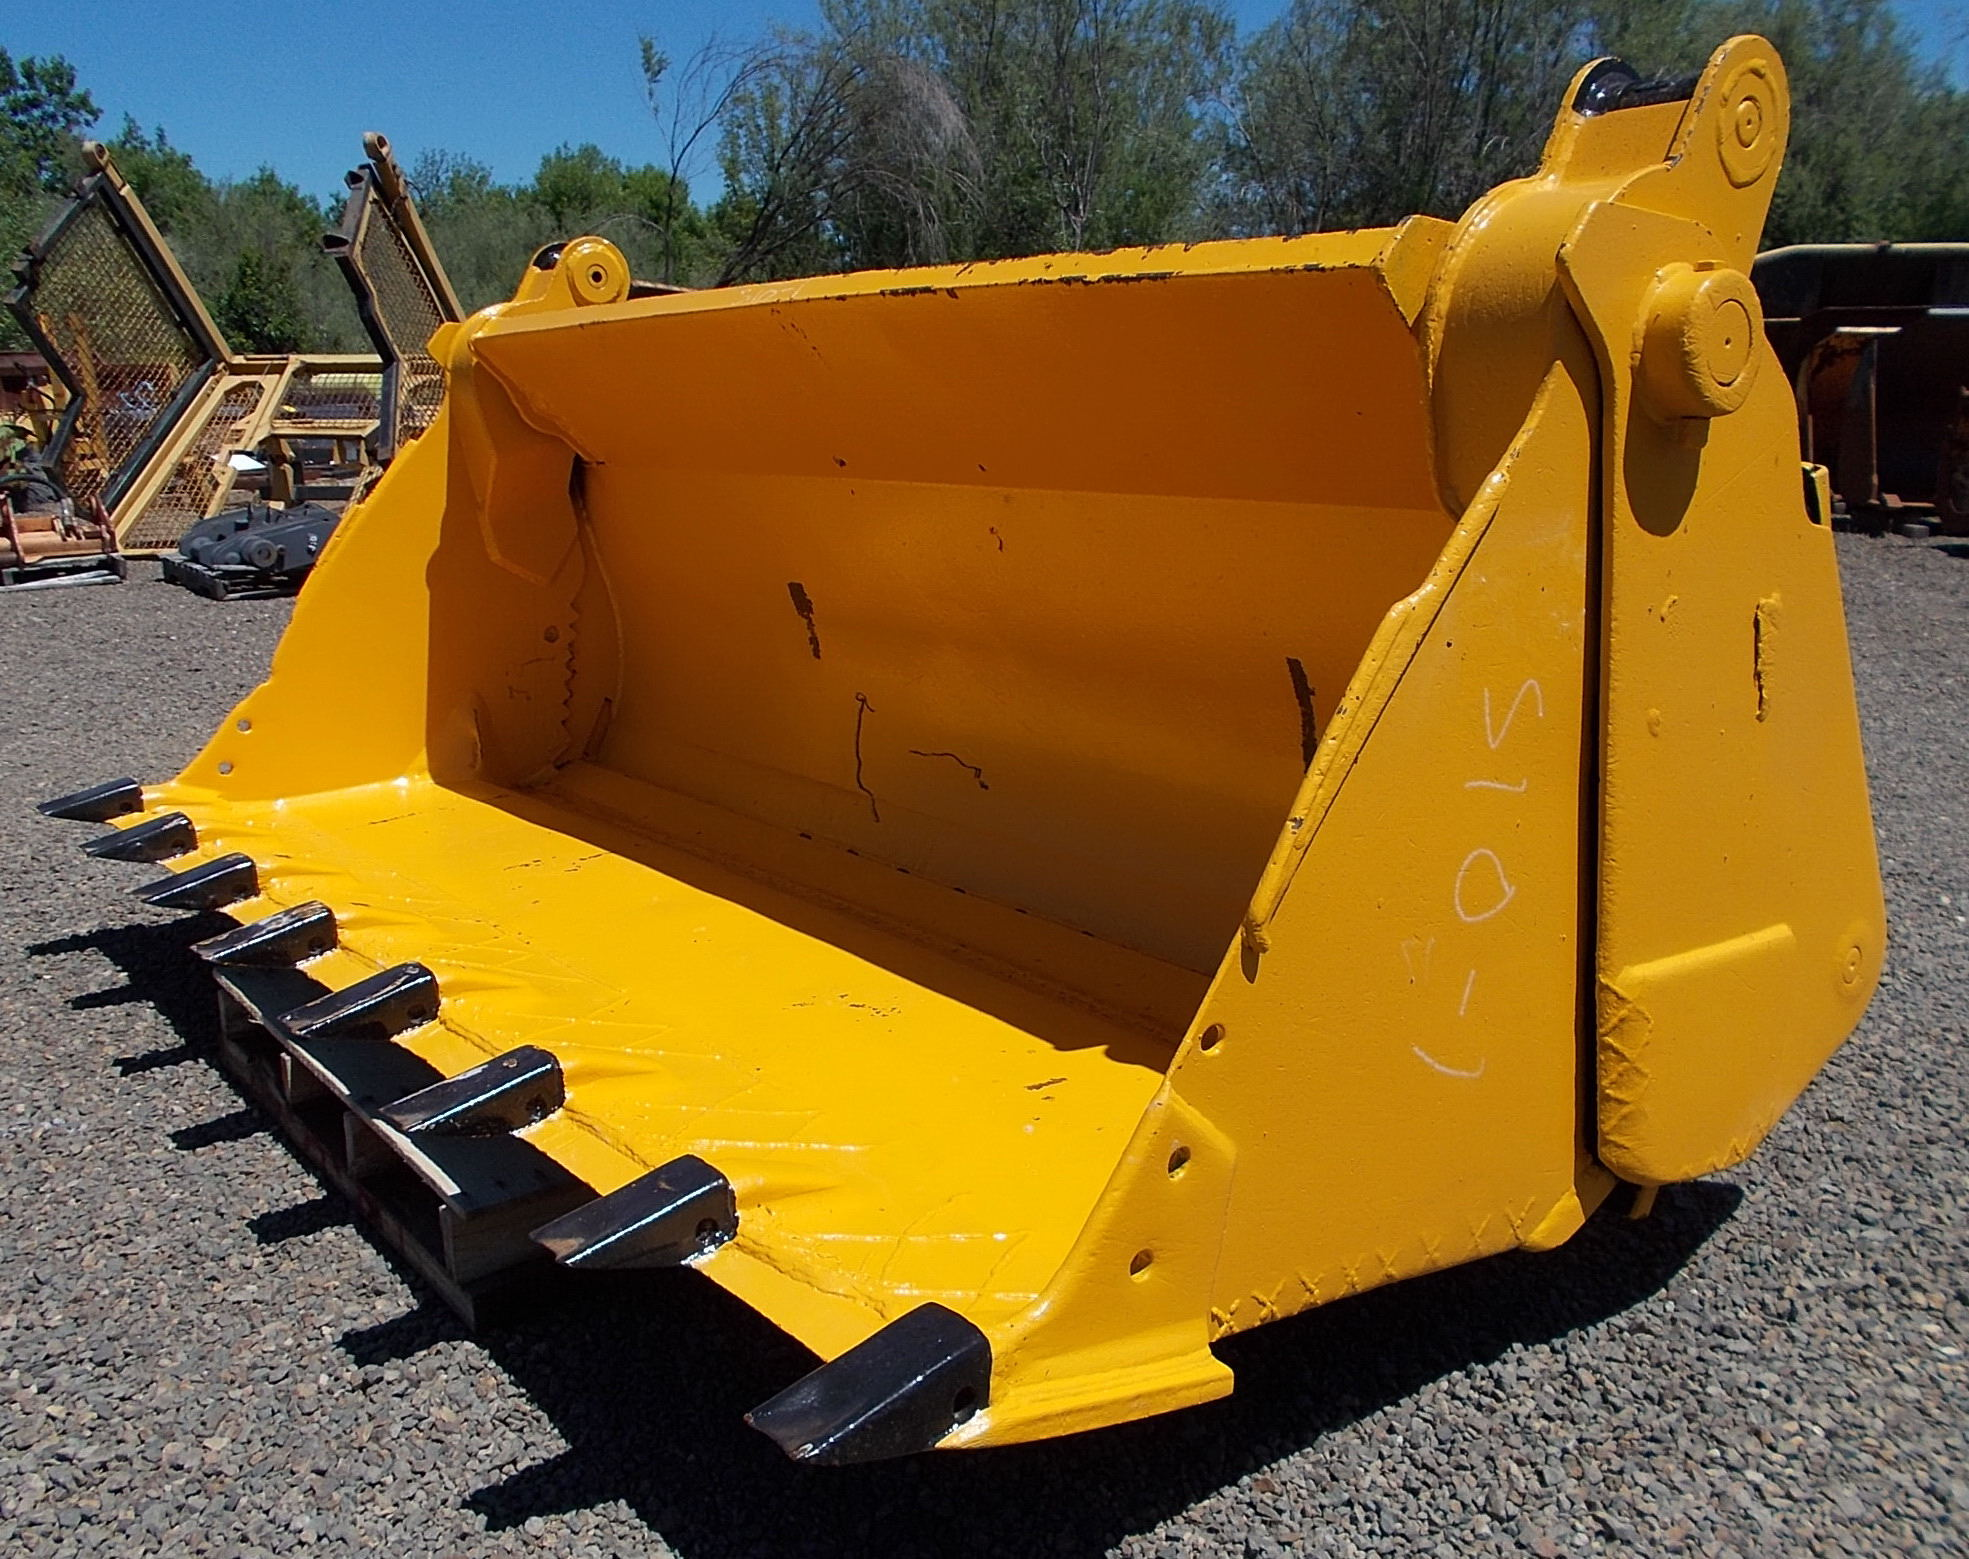 Hunt Tractor - Used 103 John Deere 544E Pin-On 4-1 Loader ...